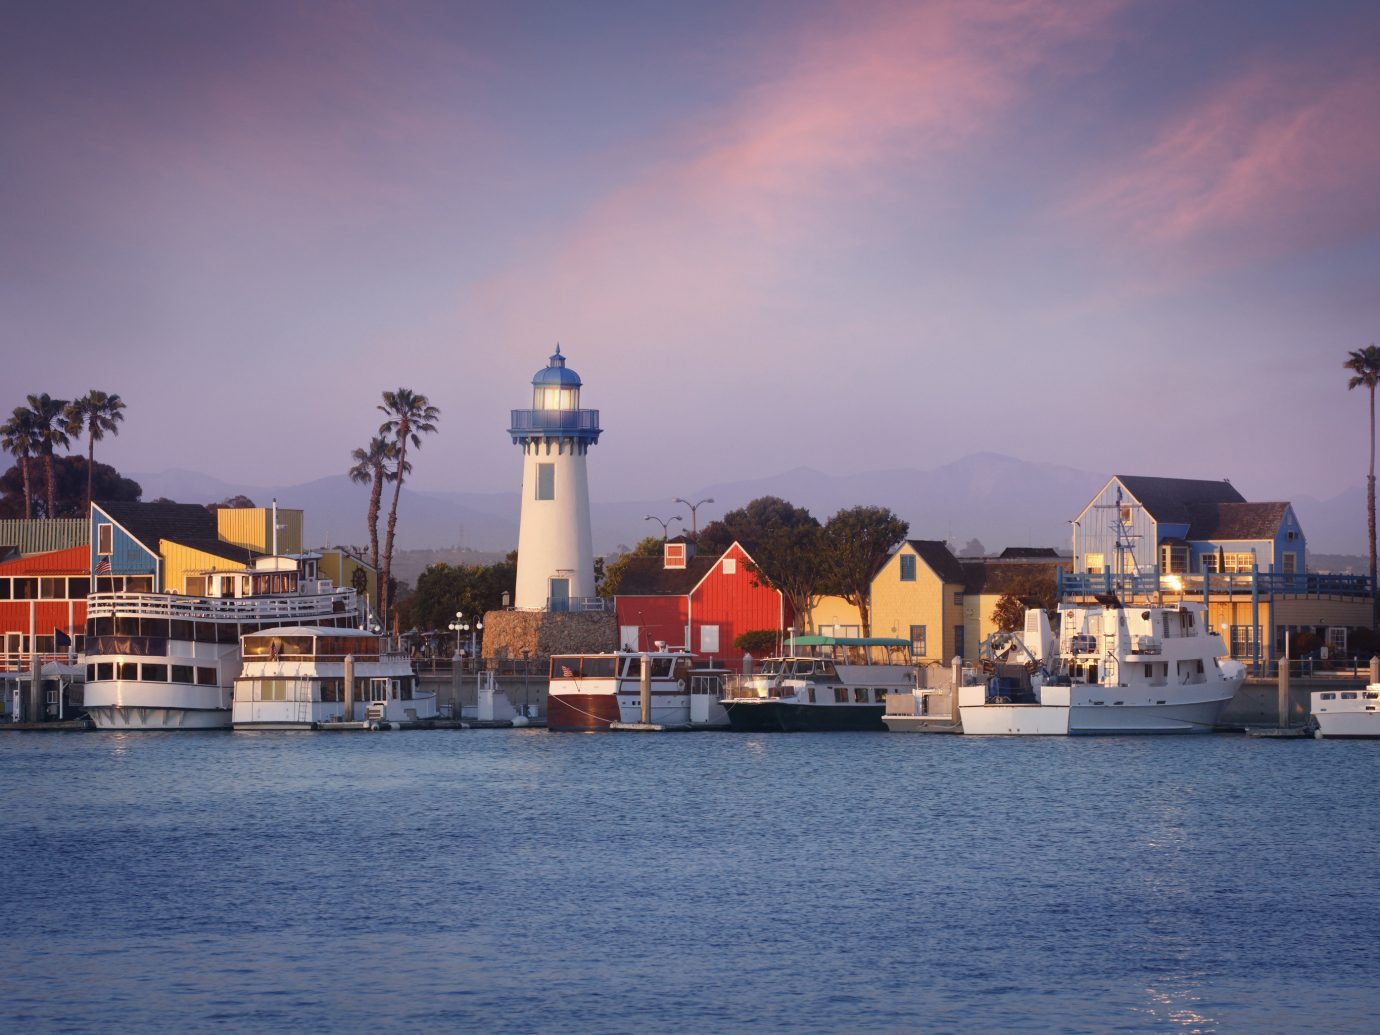 Offbeat sky outdoor water scene Harbor Sea City night horizon evening dusk cityscape vehicle vacation Sunset Ocean tower skyline reflection Coast passenger ship dock port waterway bay Island